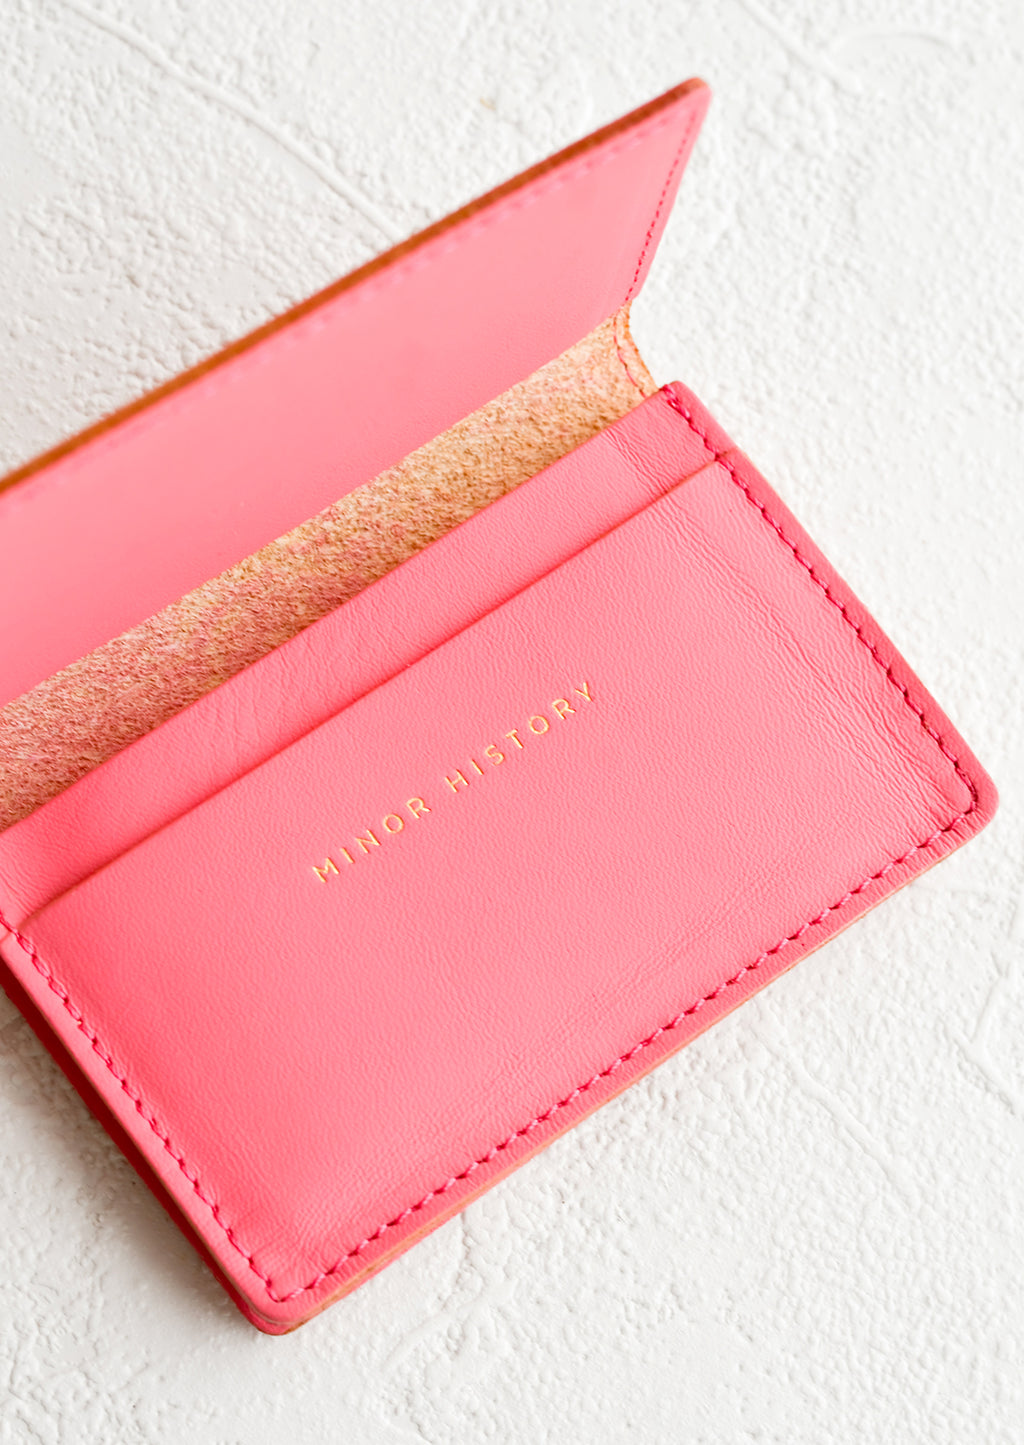 Peony: A bright pink leather card holder wallet with interior sleeve and gold branding.